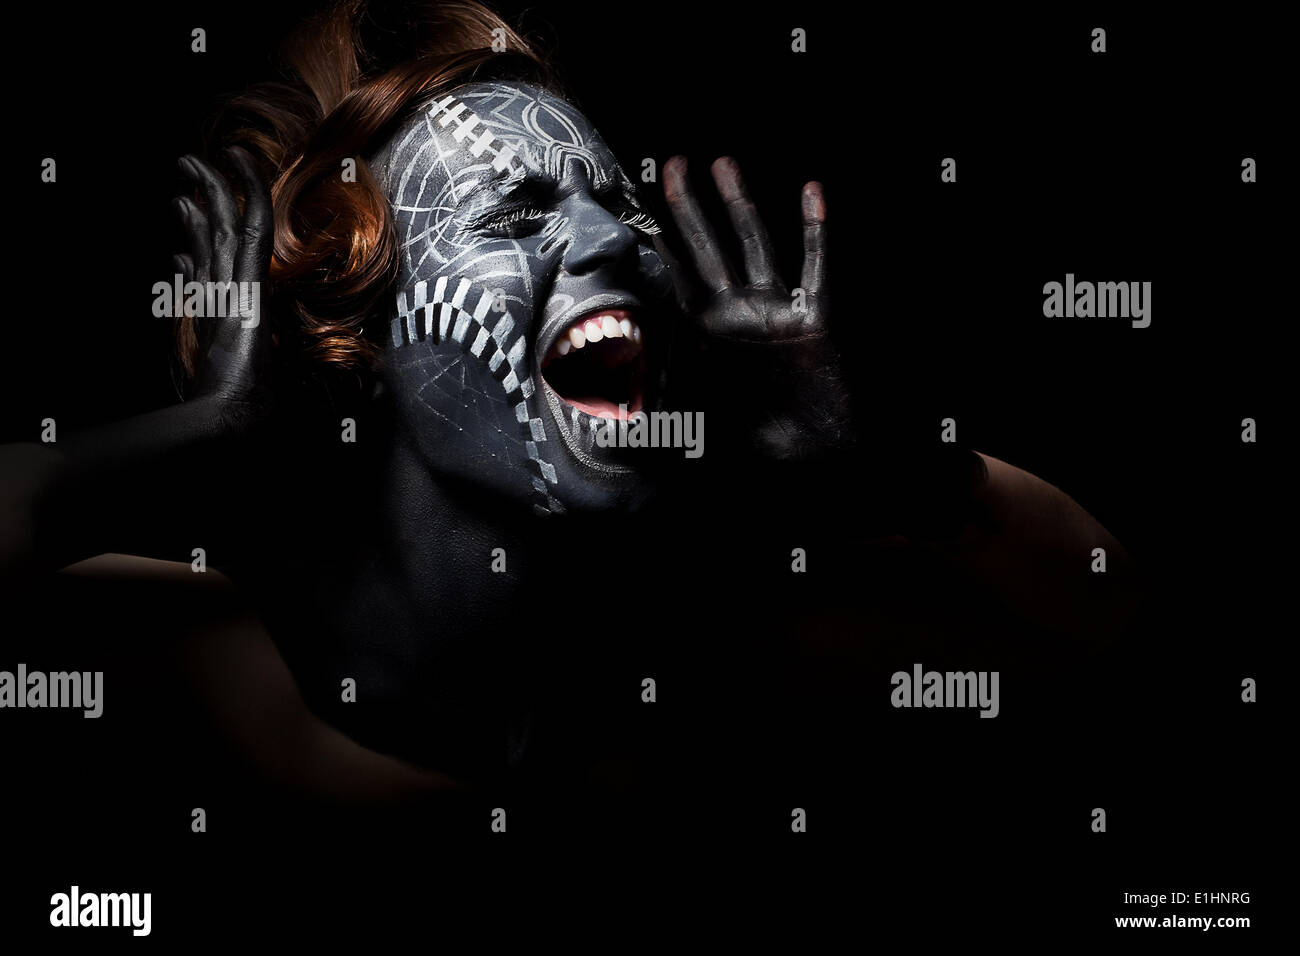 Art photo of a stressed ethnic woman with black painted mask on face and tattoo - Stock Image